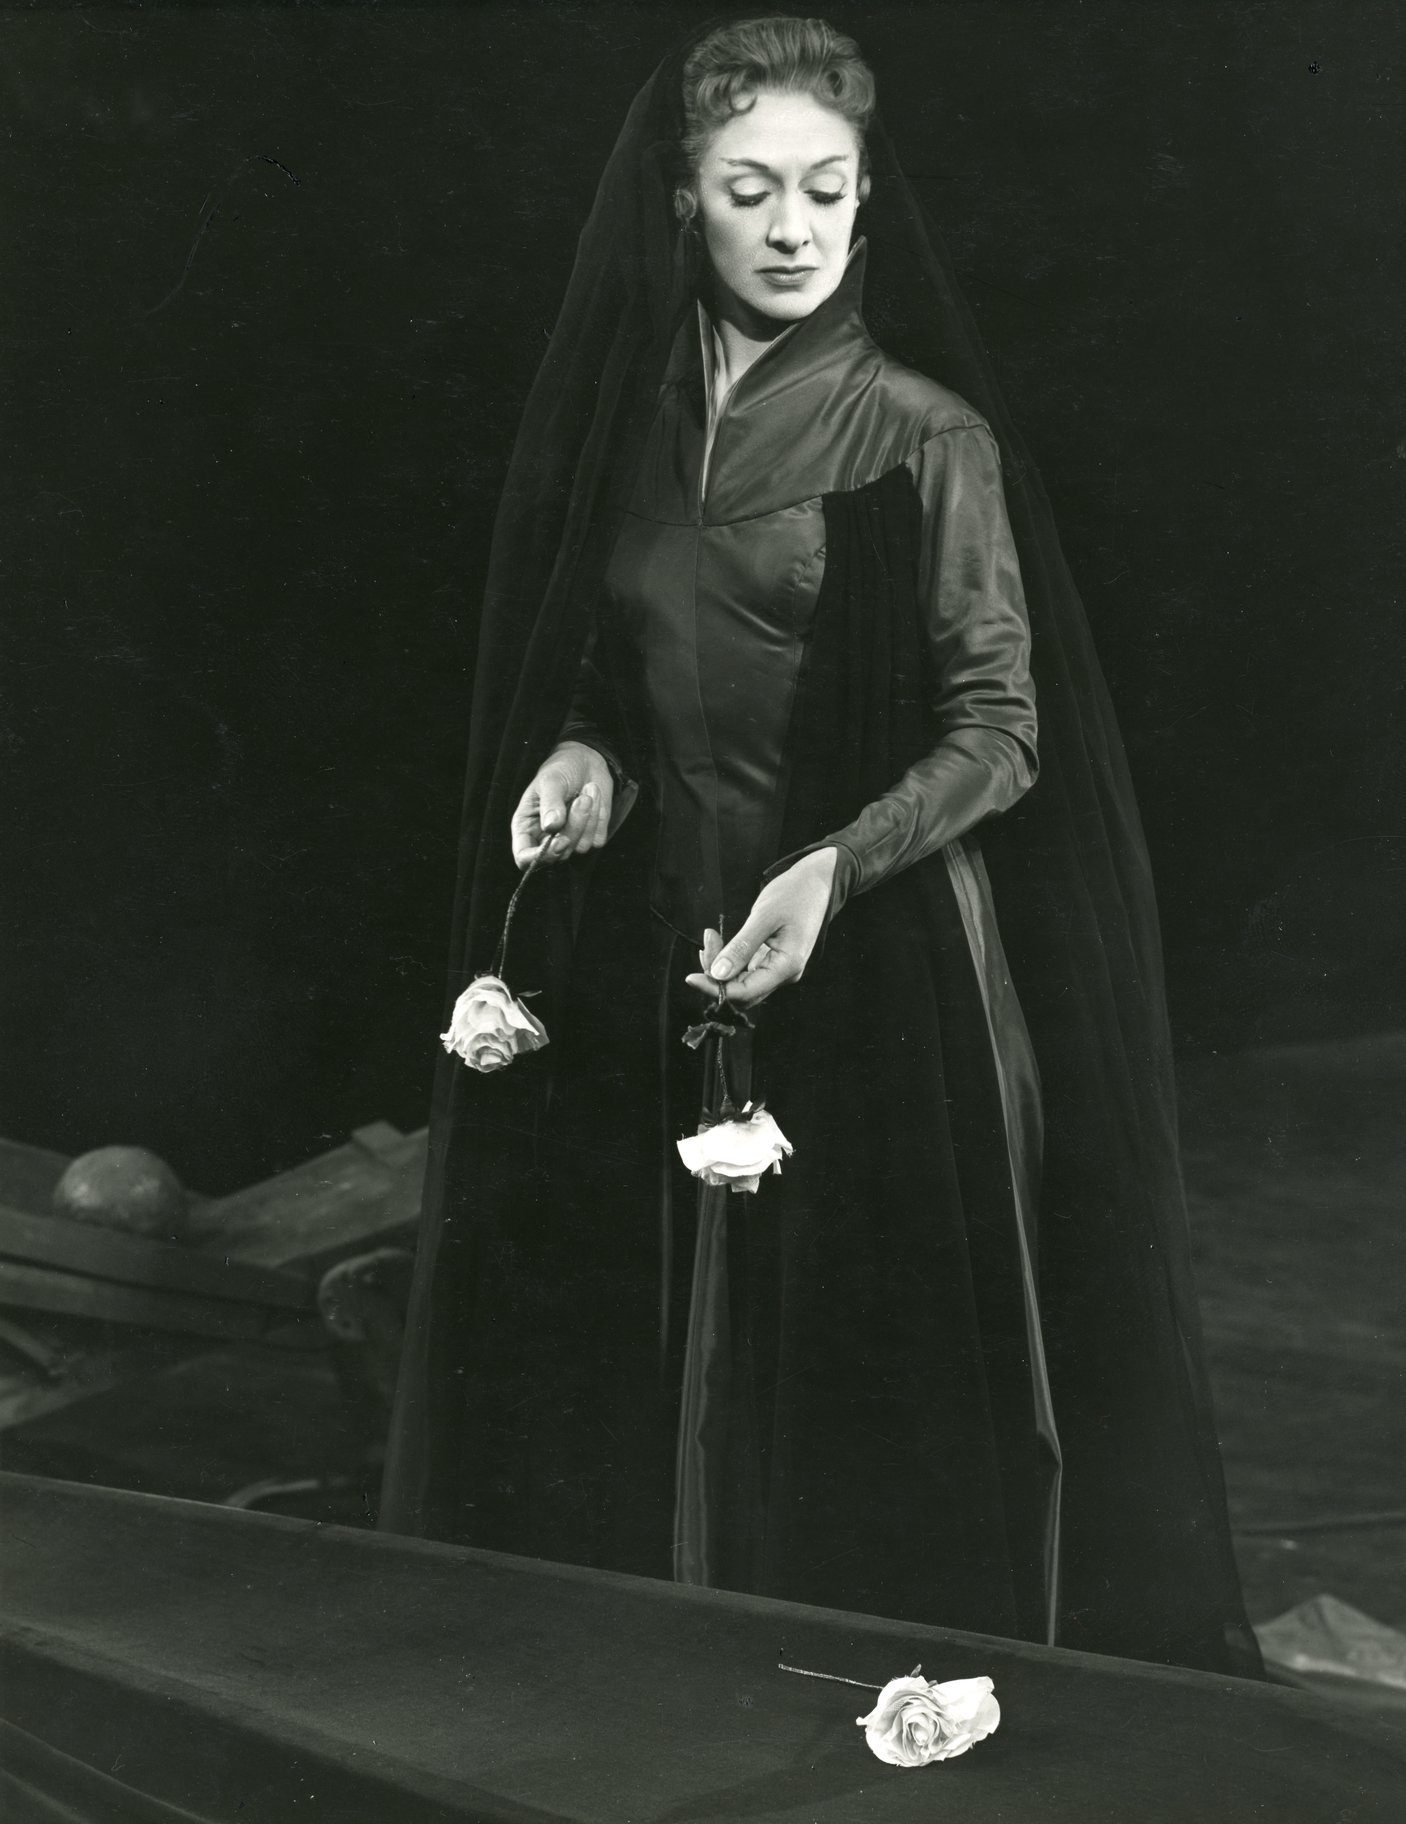 Gertrude with roses at Ophelia's grave.